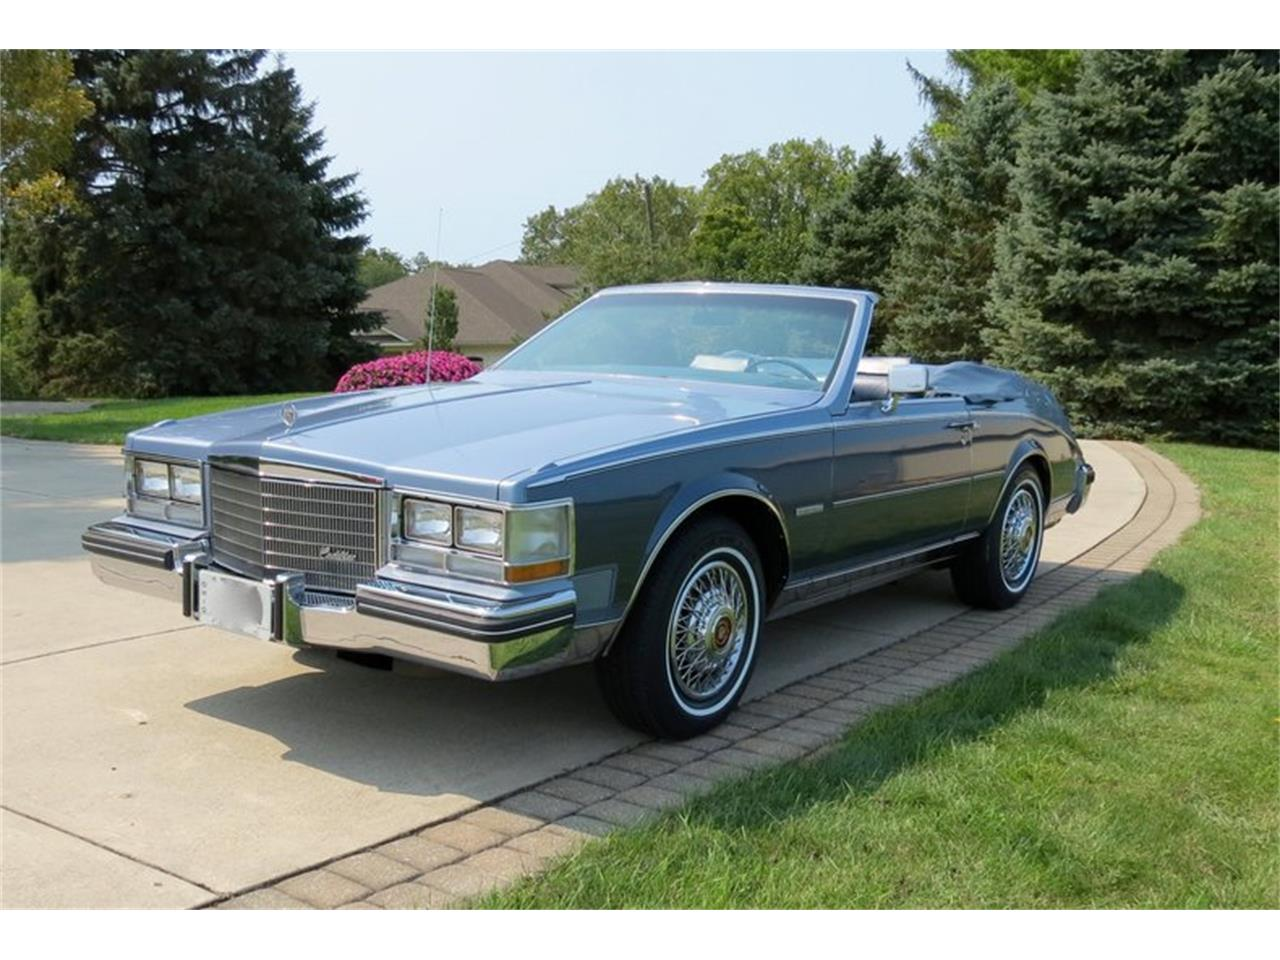 1983 Cadillac Seville for sale in Dayton, OH